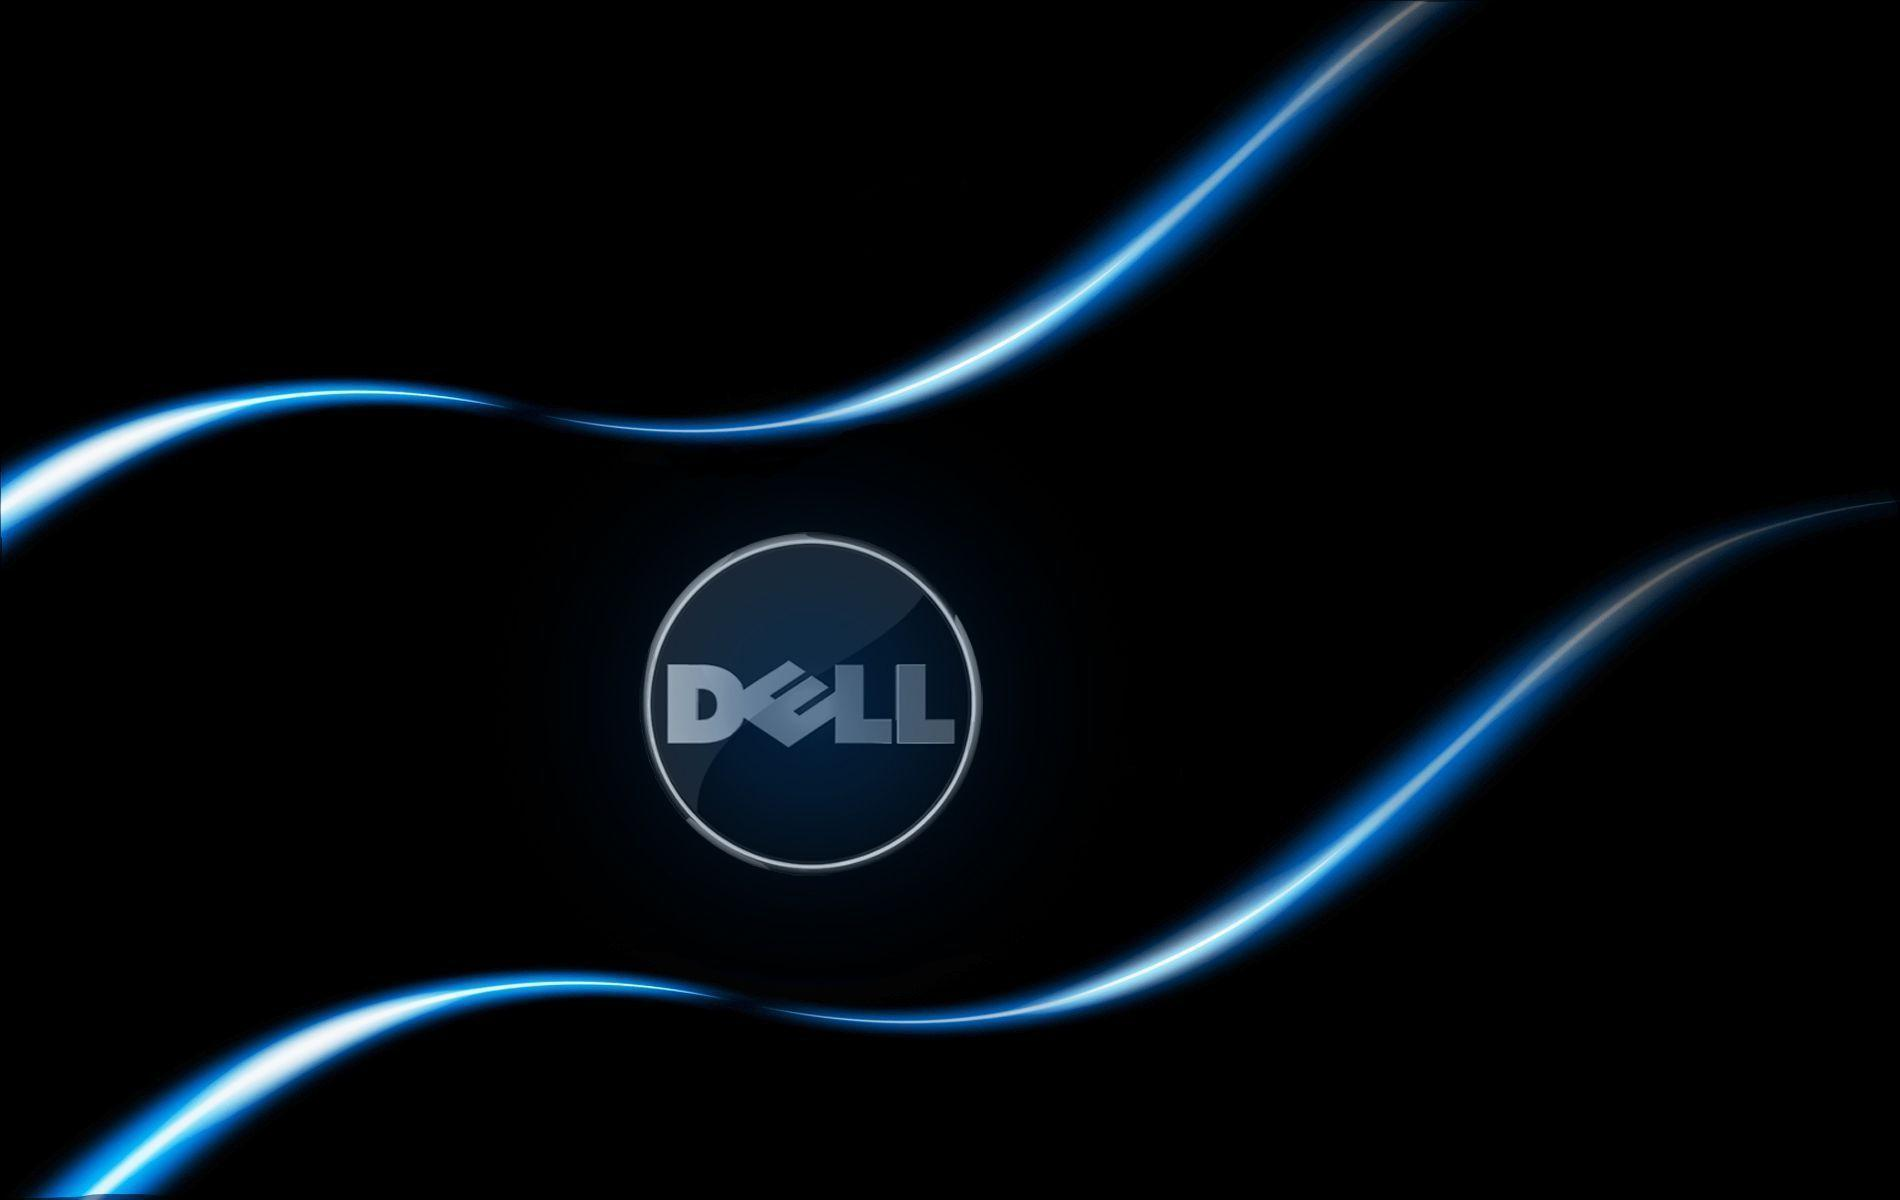 Dell XPS Wallpapers - Wallpaper Cave